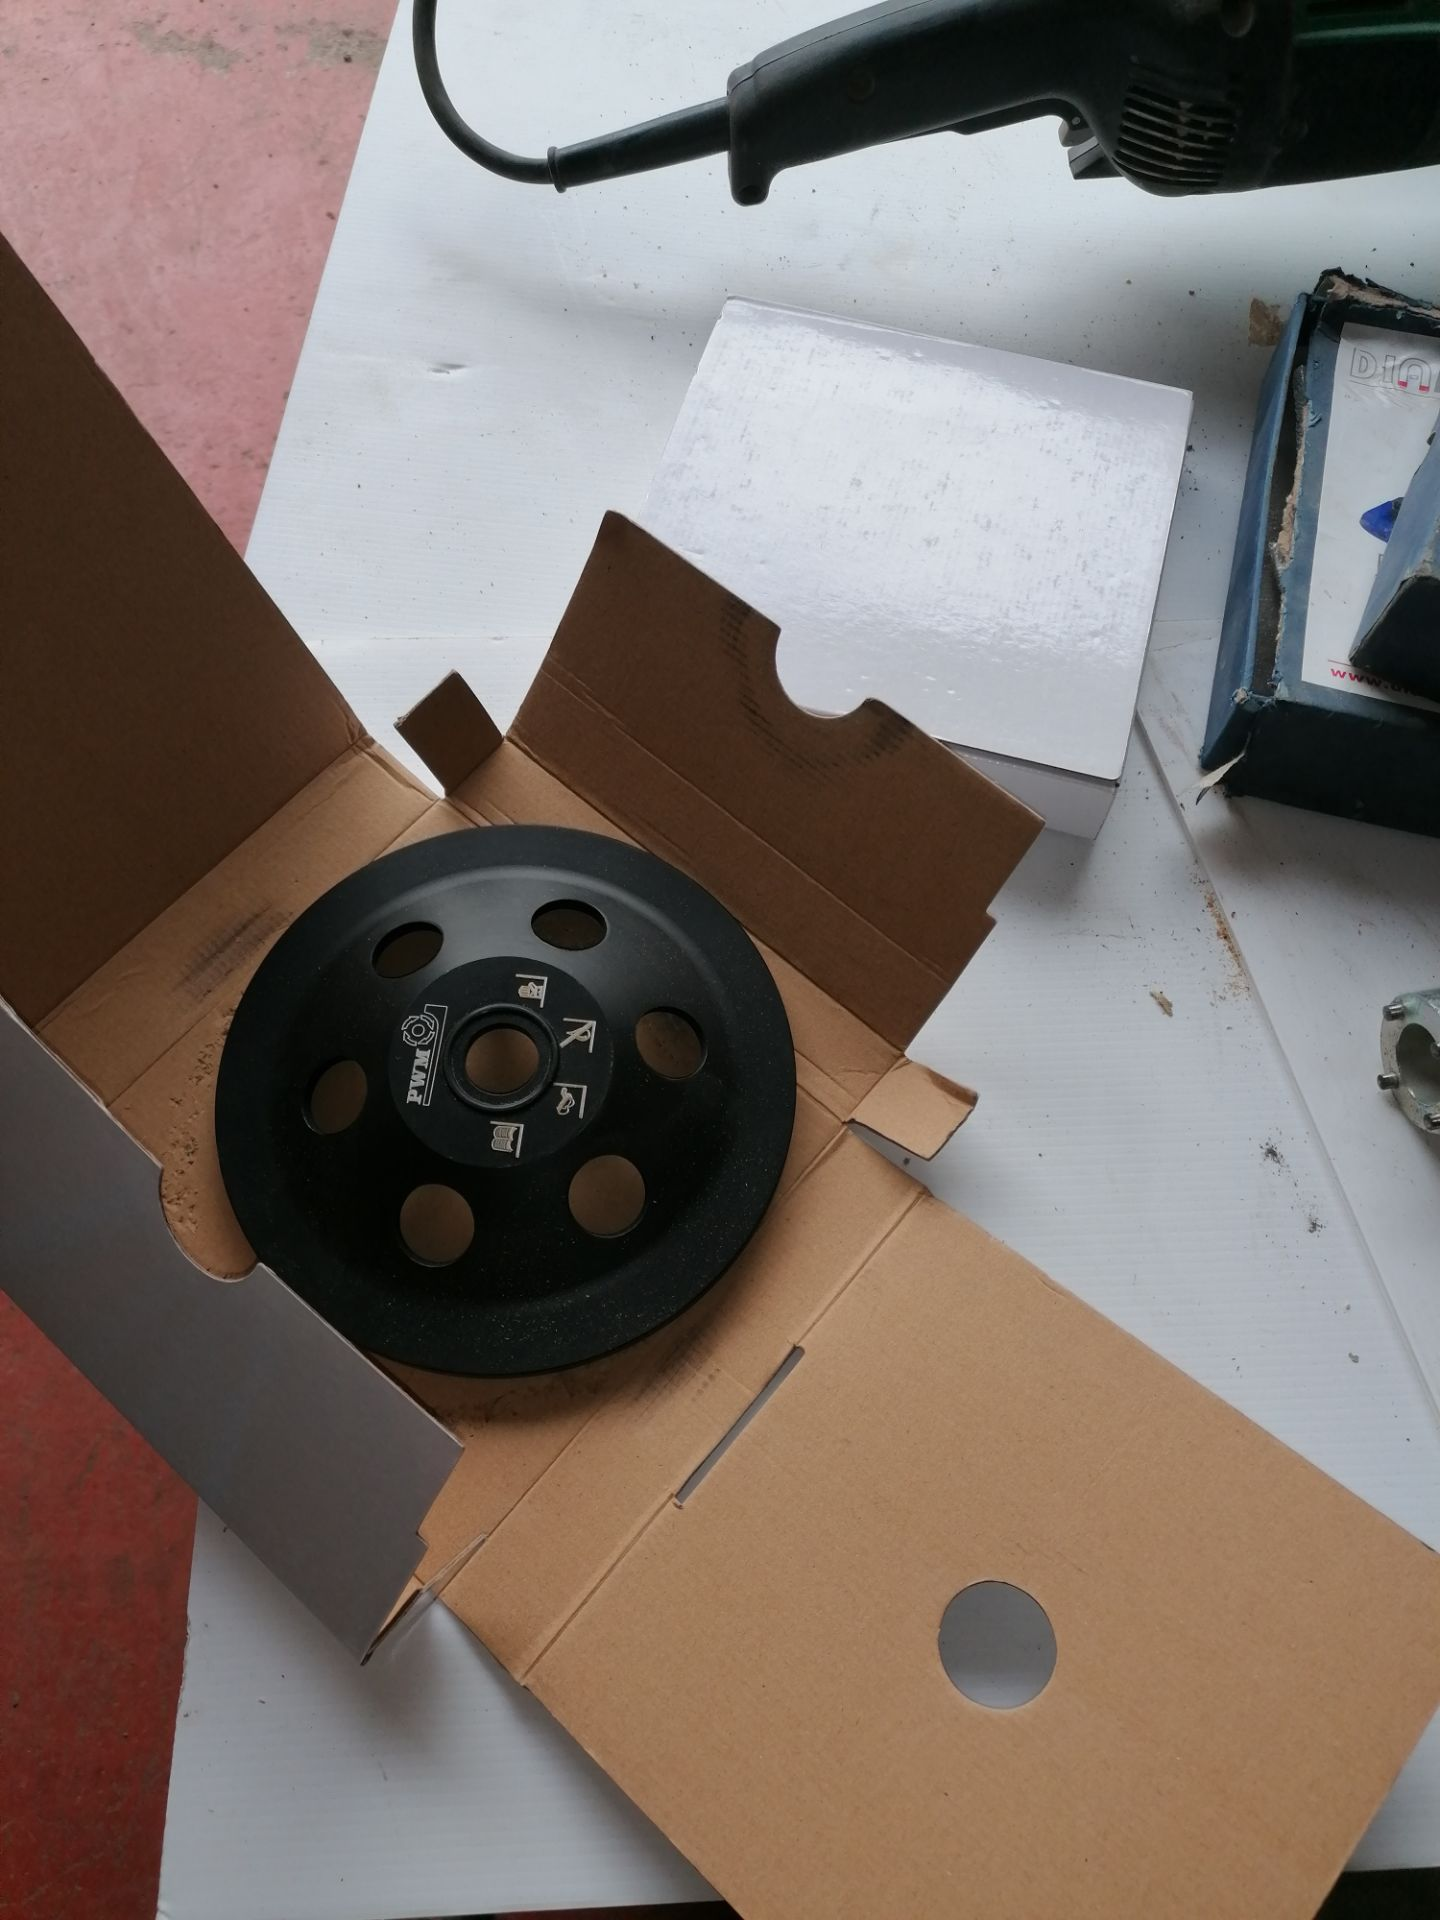 Hikoki G23SCB Grinder with Blades & Extractor Attachment (to attach to Lot 27) - Image 4 of 9